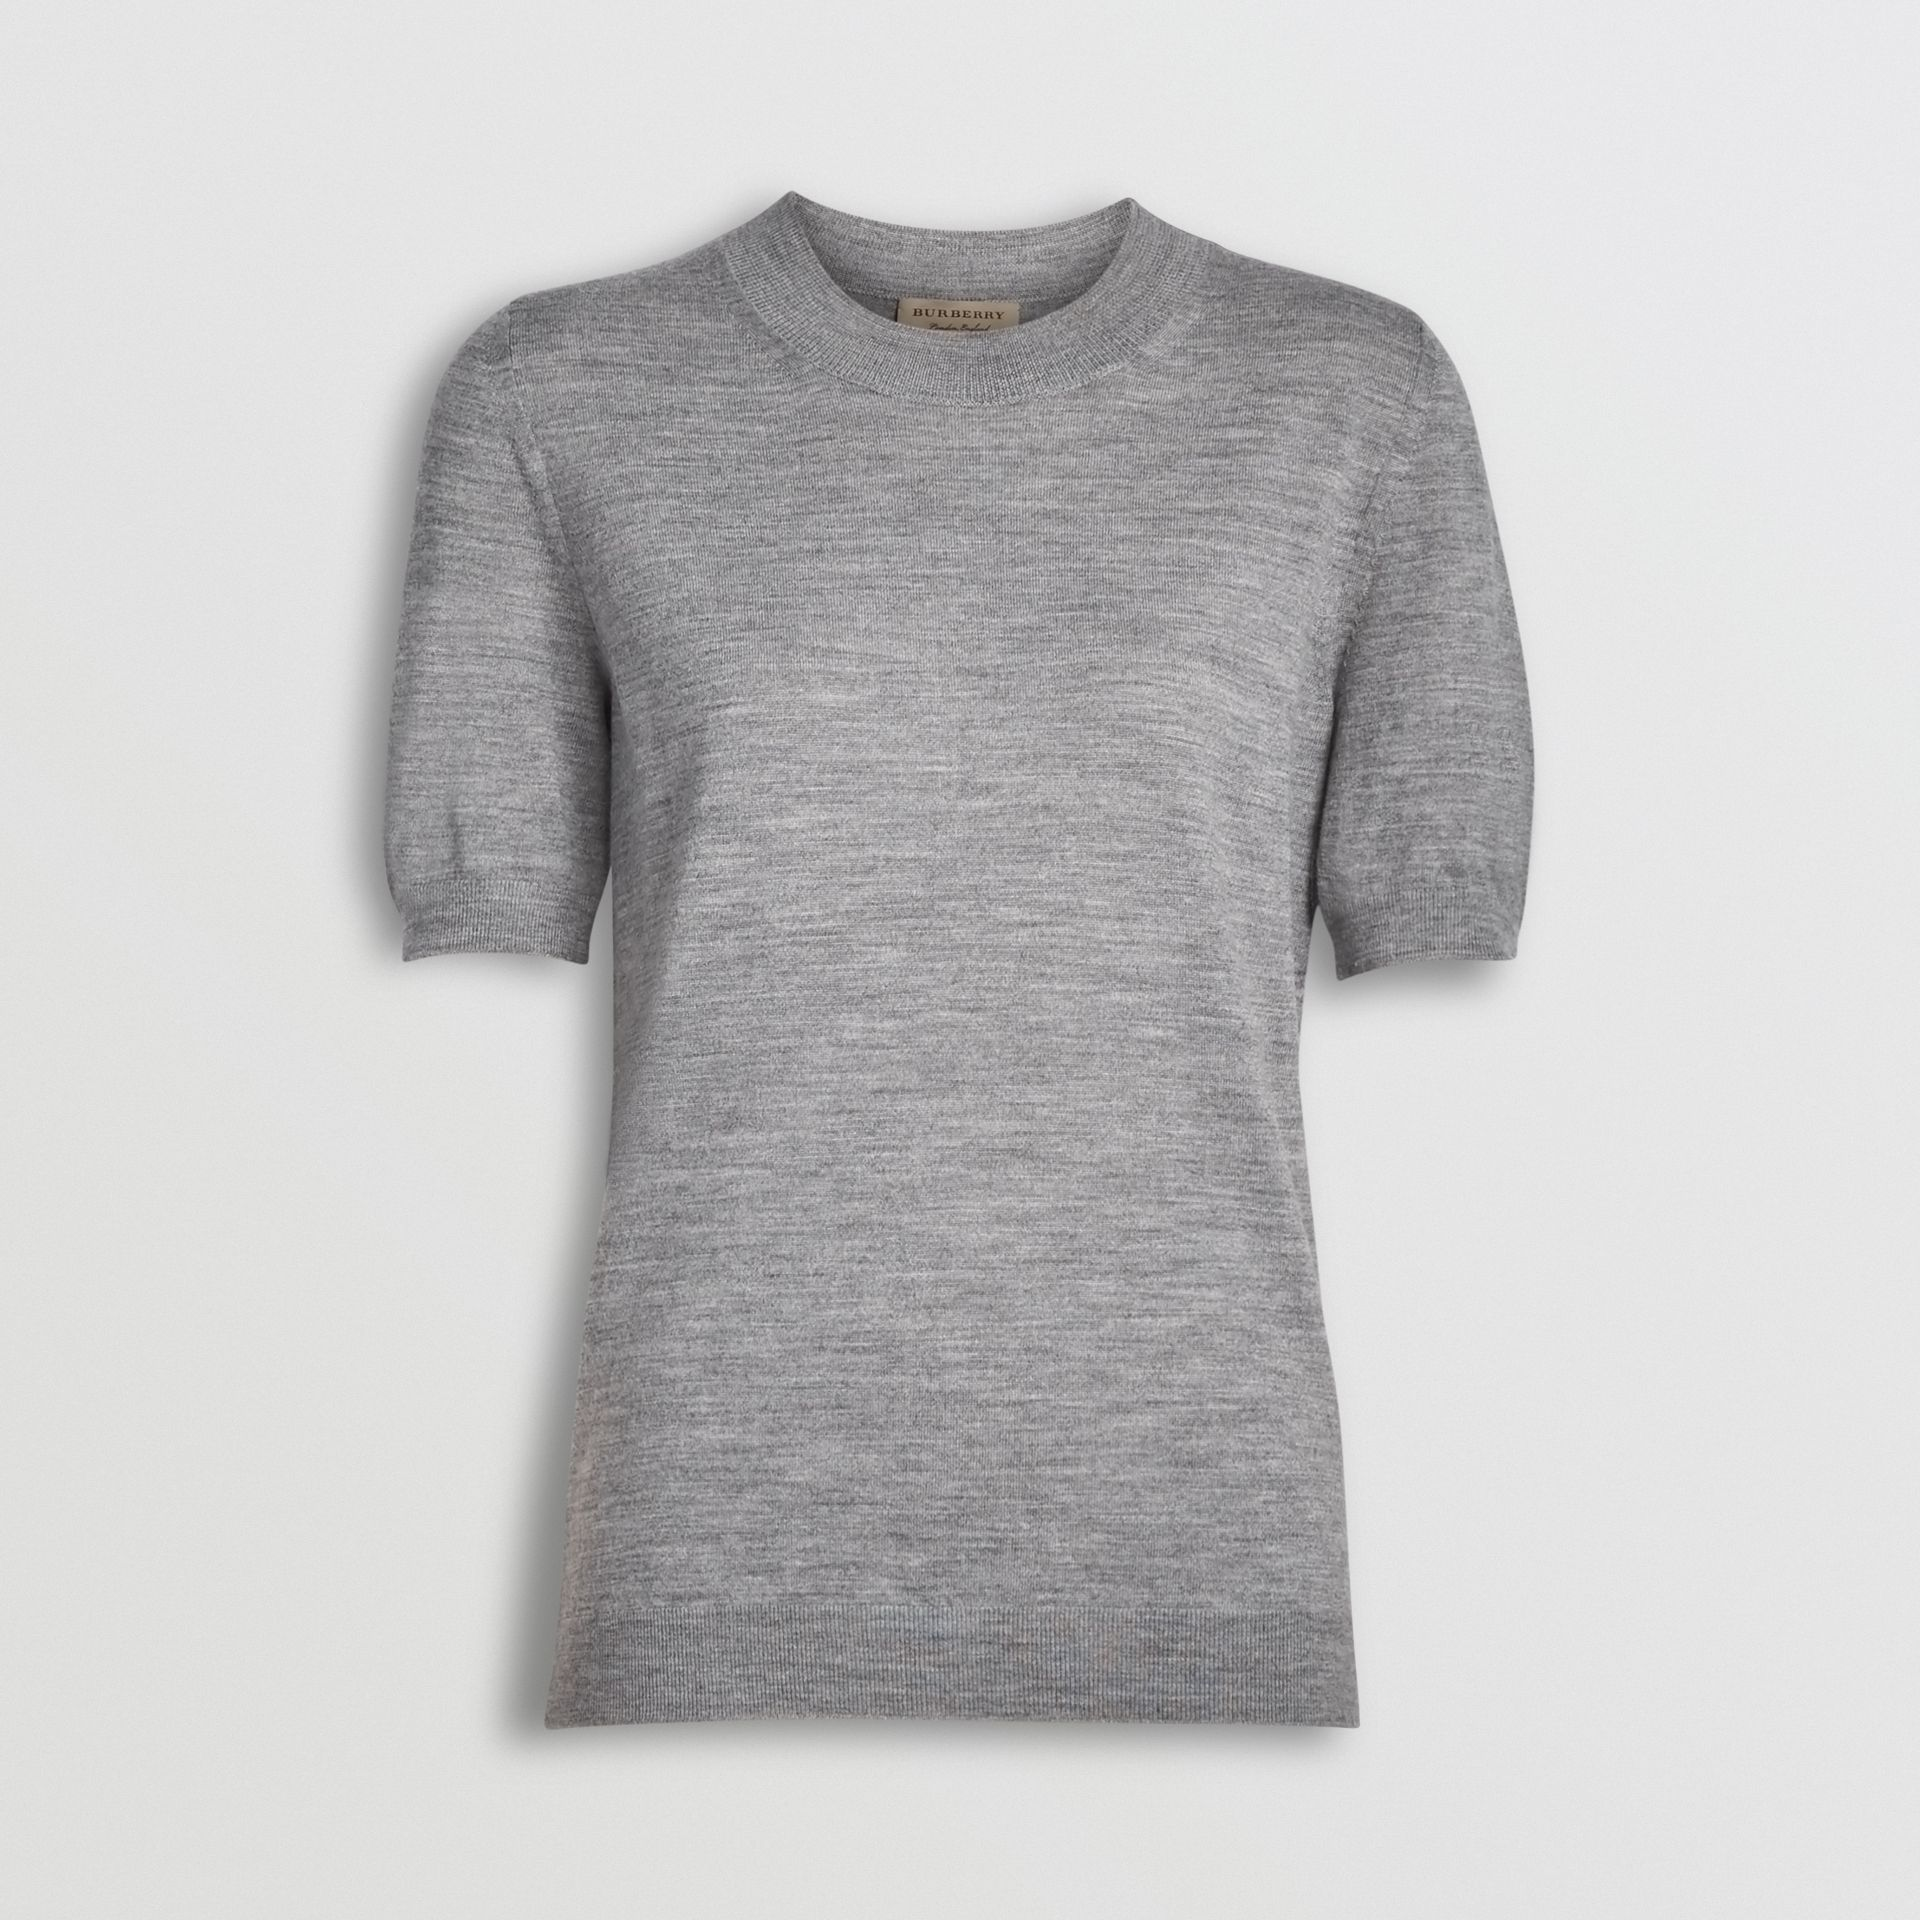 Crew Neck Merino Wool Sweater in Grey Melange - Women | Burberry - gallery image 3